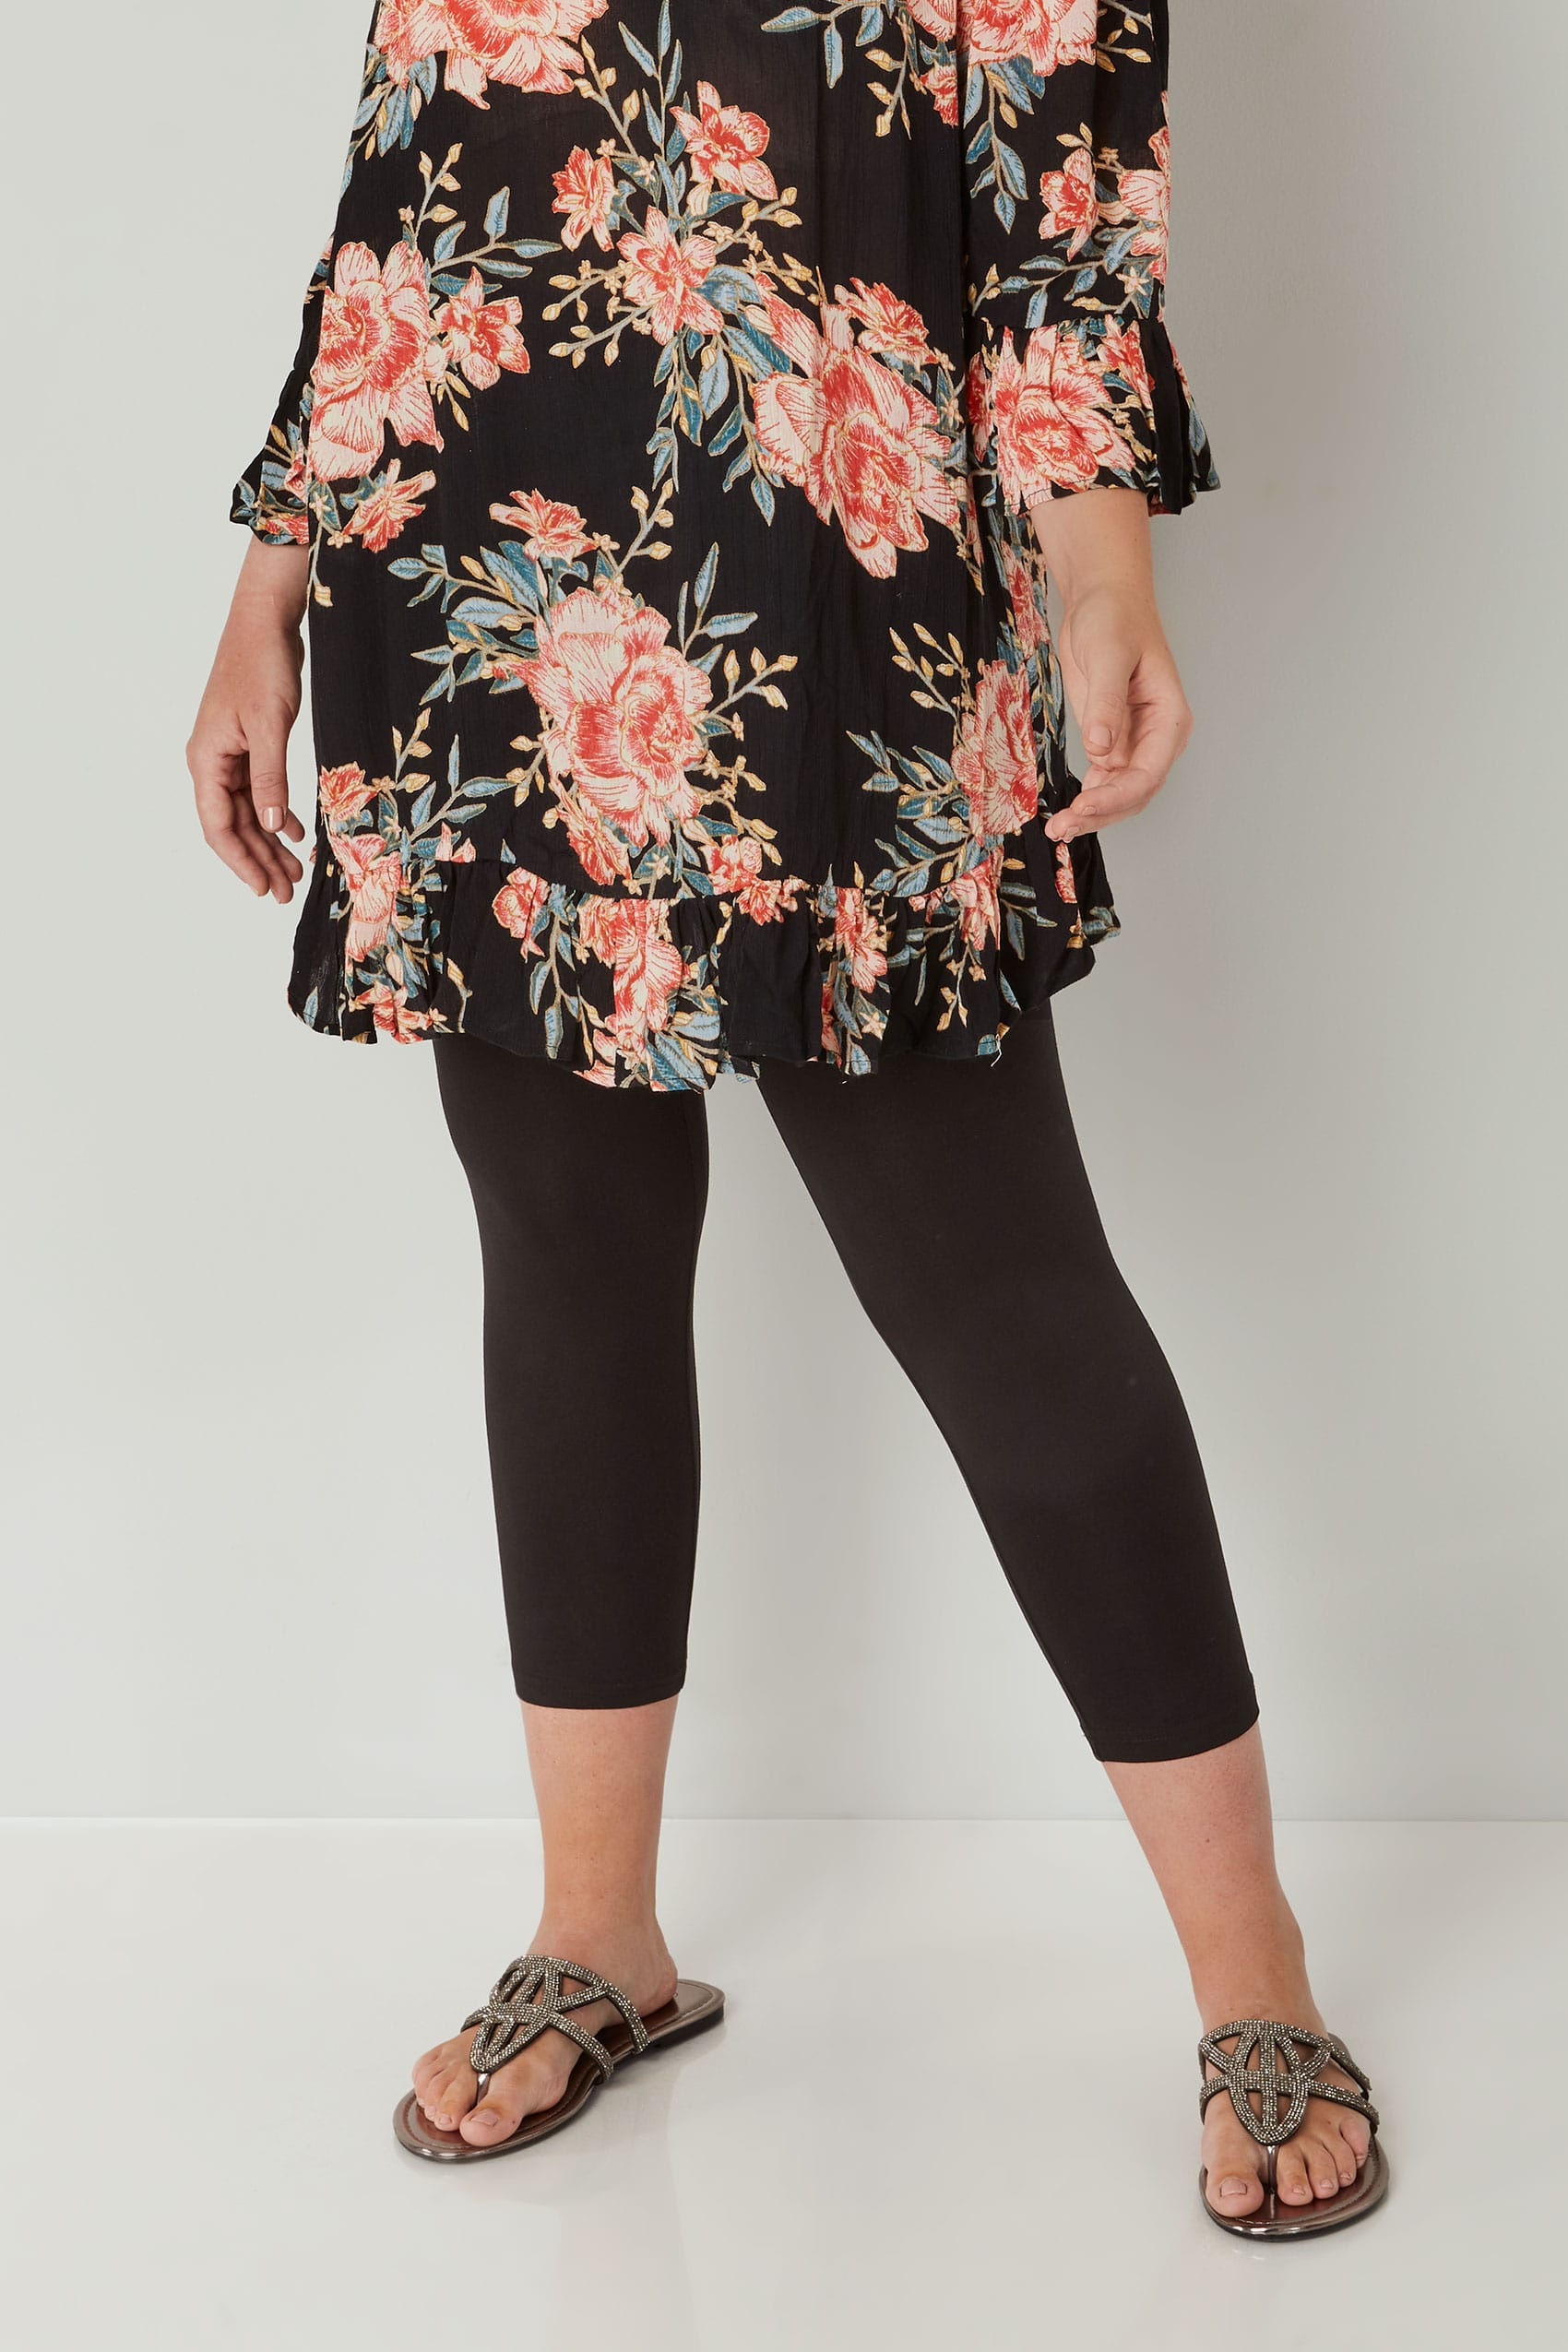 2 PACK Black Soft Touch Leggings Plus Size 16 to 36